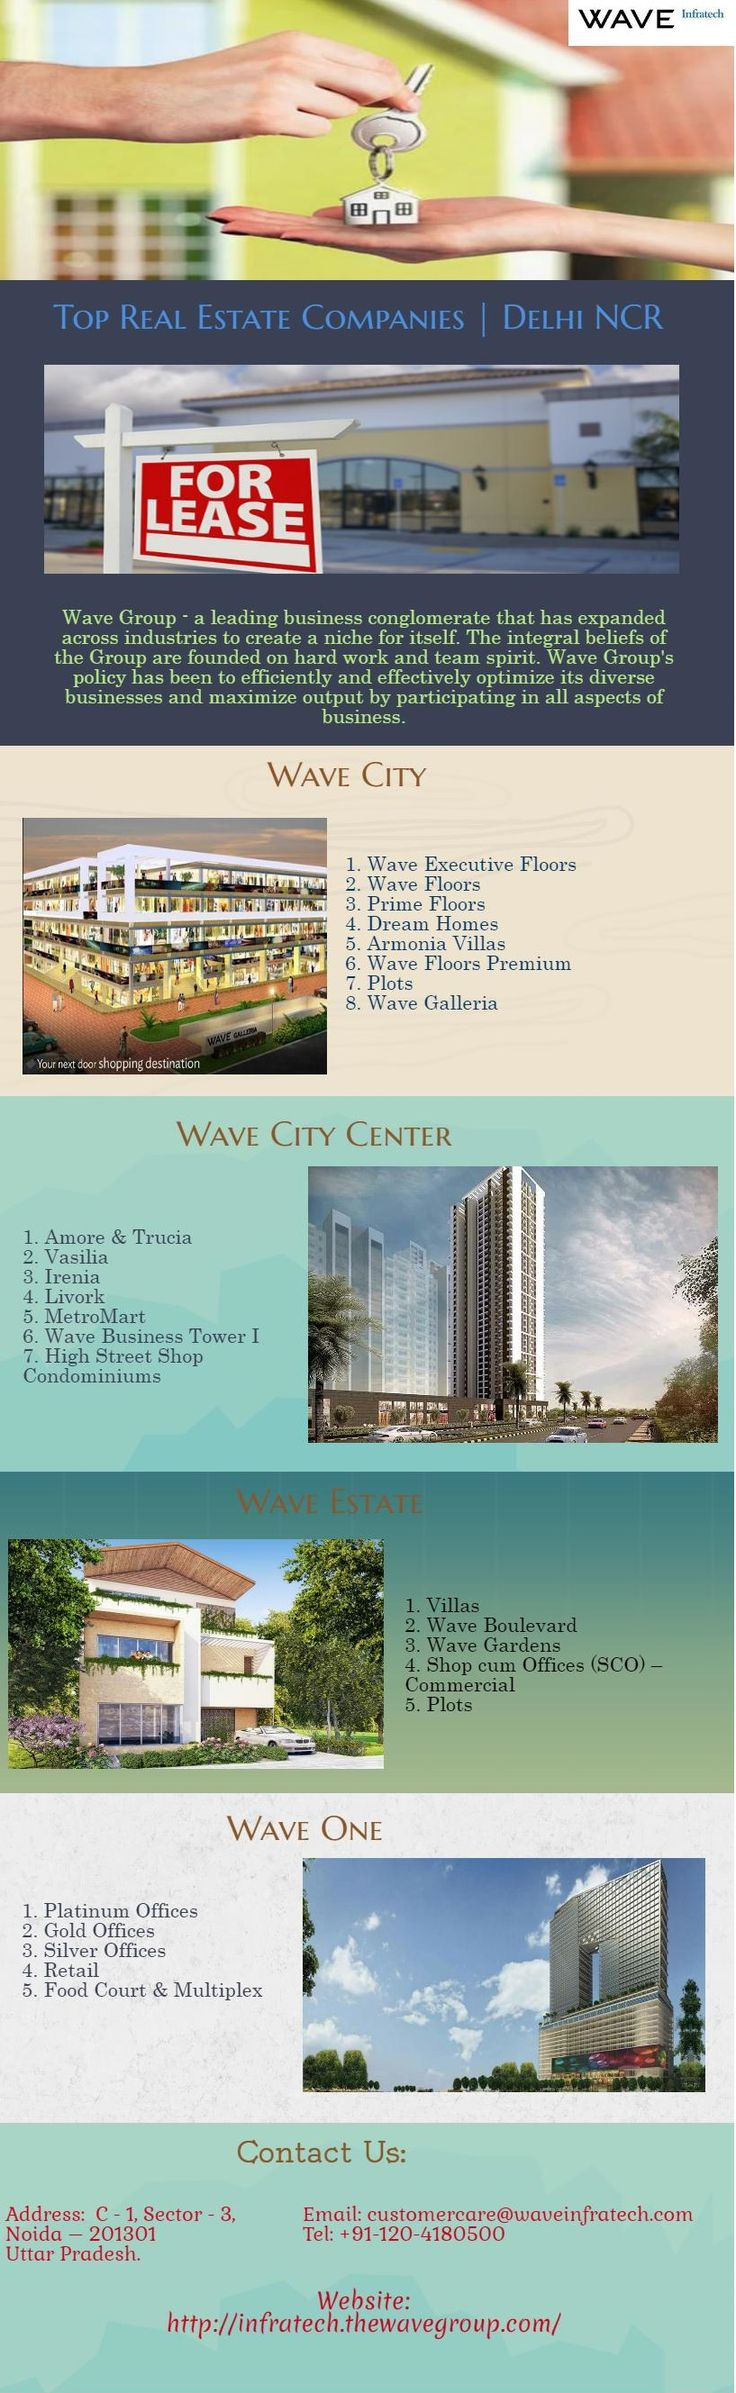 Wave Infratech is introduced as one of the real estate arm of all Wave Group. It has become a famed name and a leading players in the real estate sector. As one of the largest commercial and residential landmarks, it also provide best 2 BHK Flats in Delhi and house product with ultra luxury services, Multi-use Studio Apartments, Premium Offices, Mall and Multiplex.